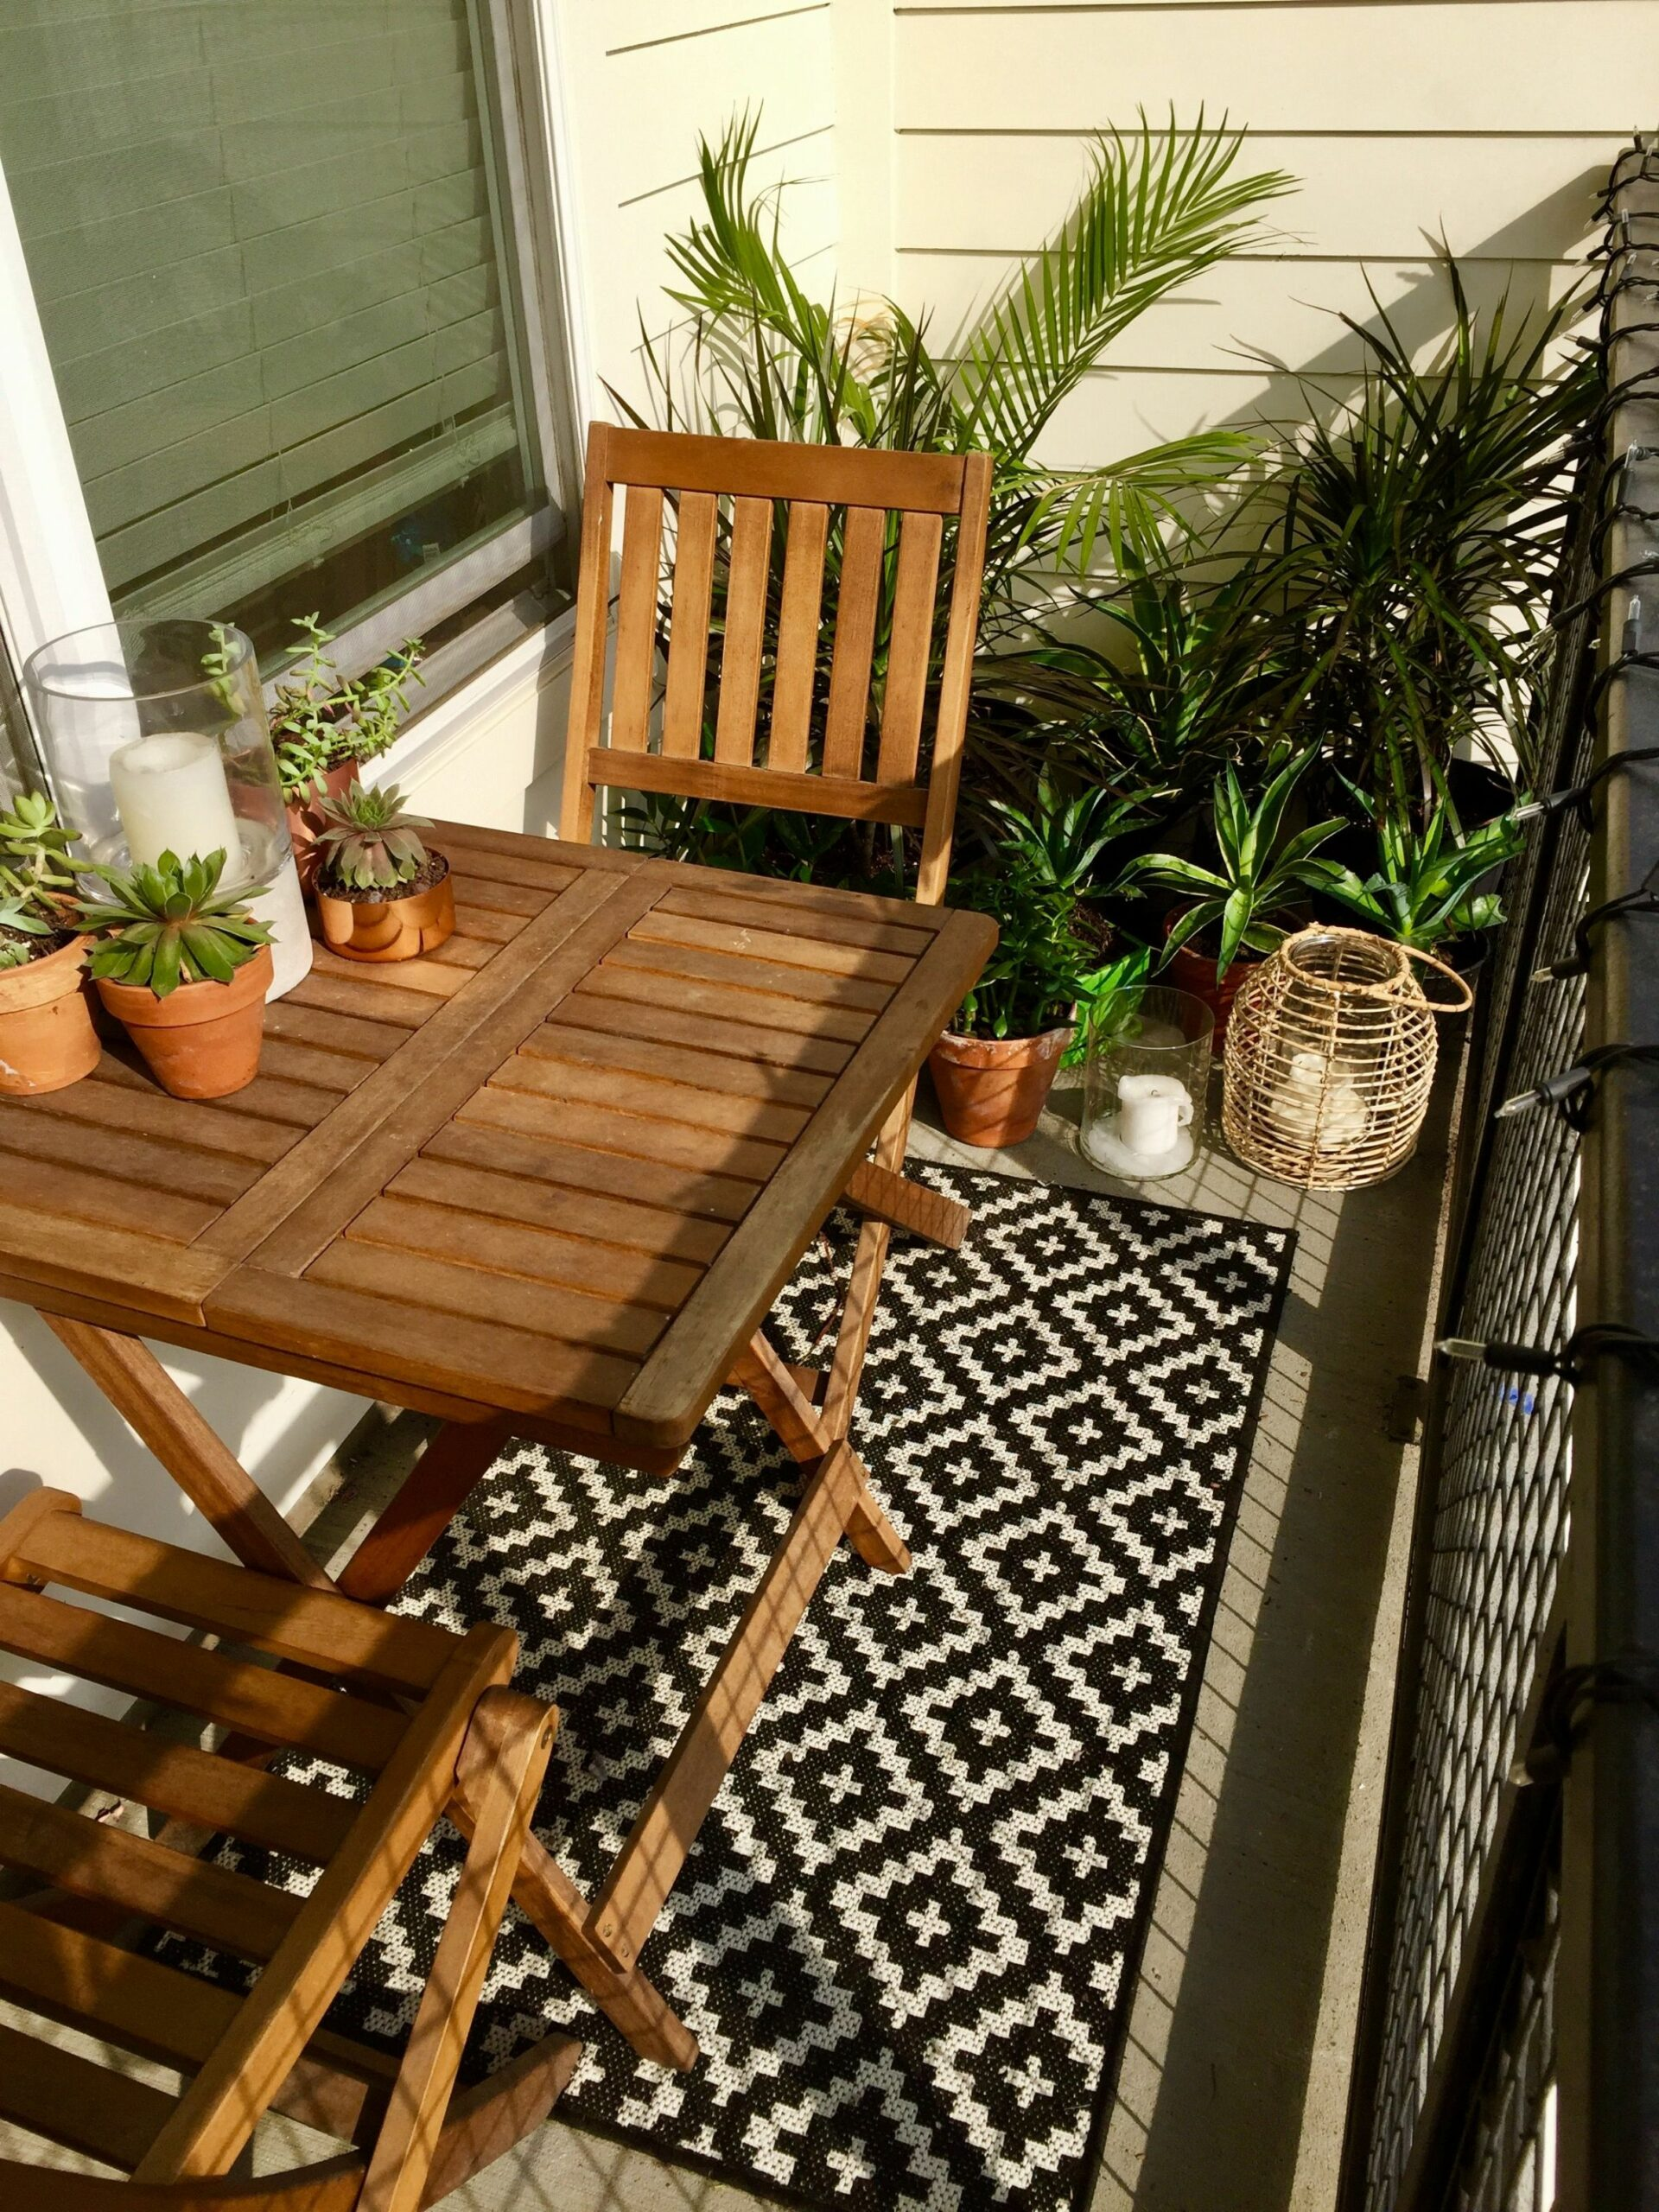 11 Summer Small Patio Ideas For You (With images) | Apartment ..